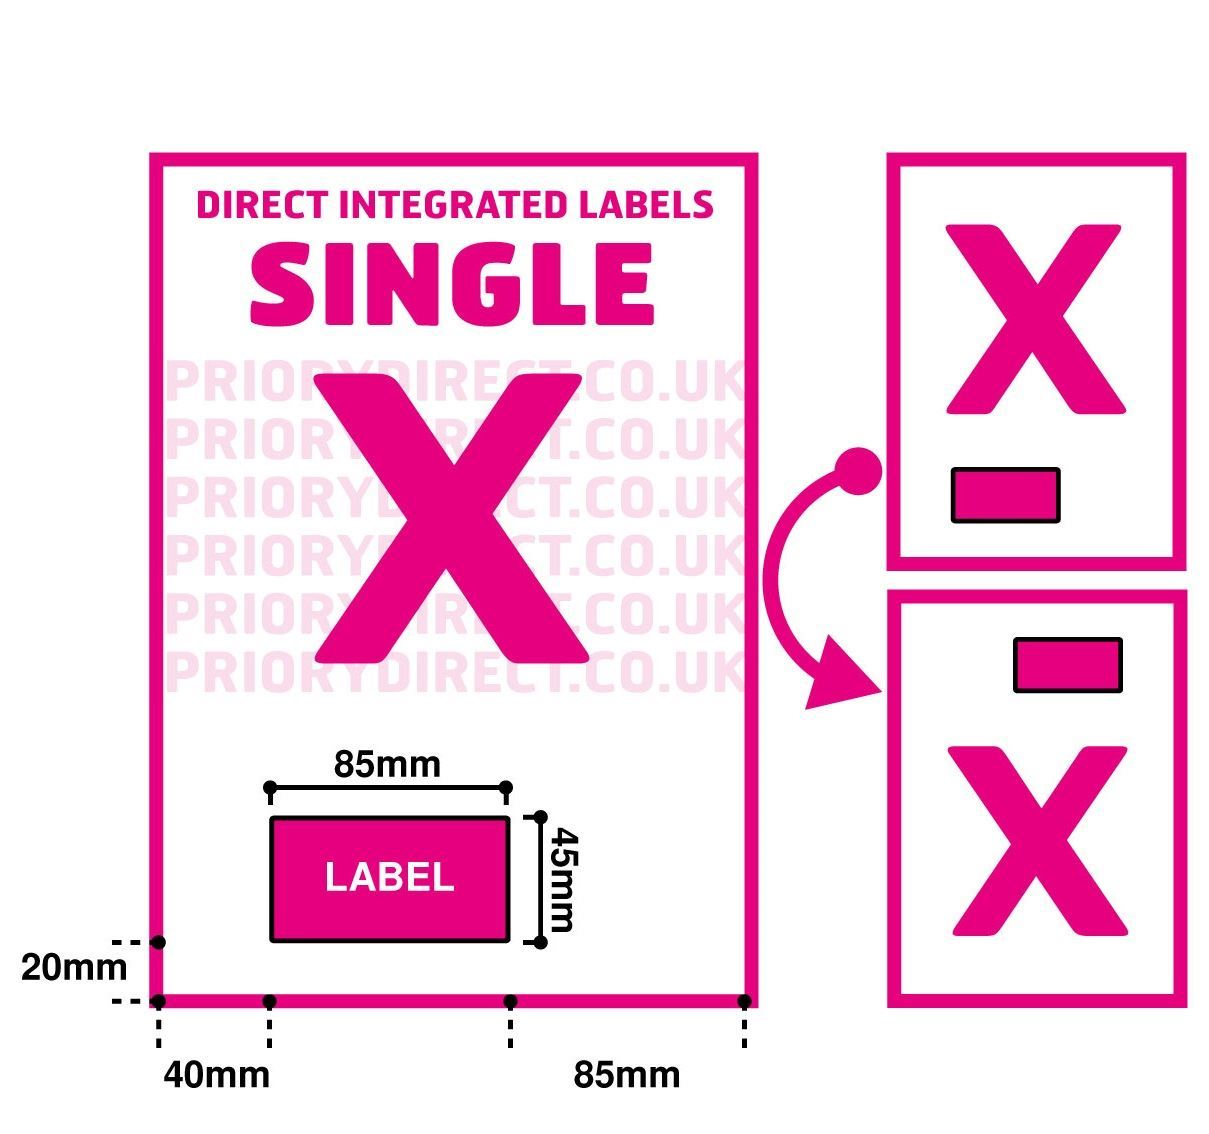 A Integrated Label Invoice Paper Sticky Address Sheets Single X EBay - Integrated label invoice paper